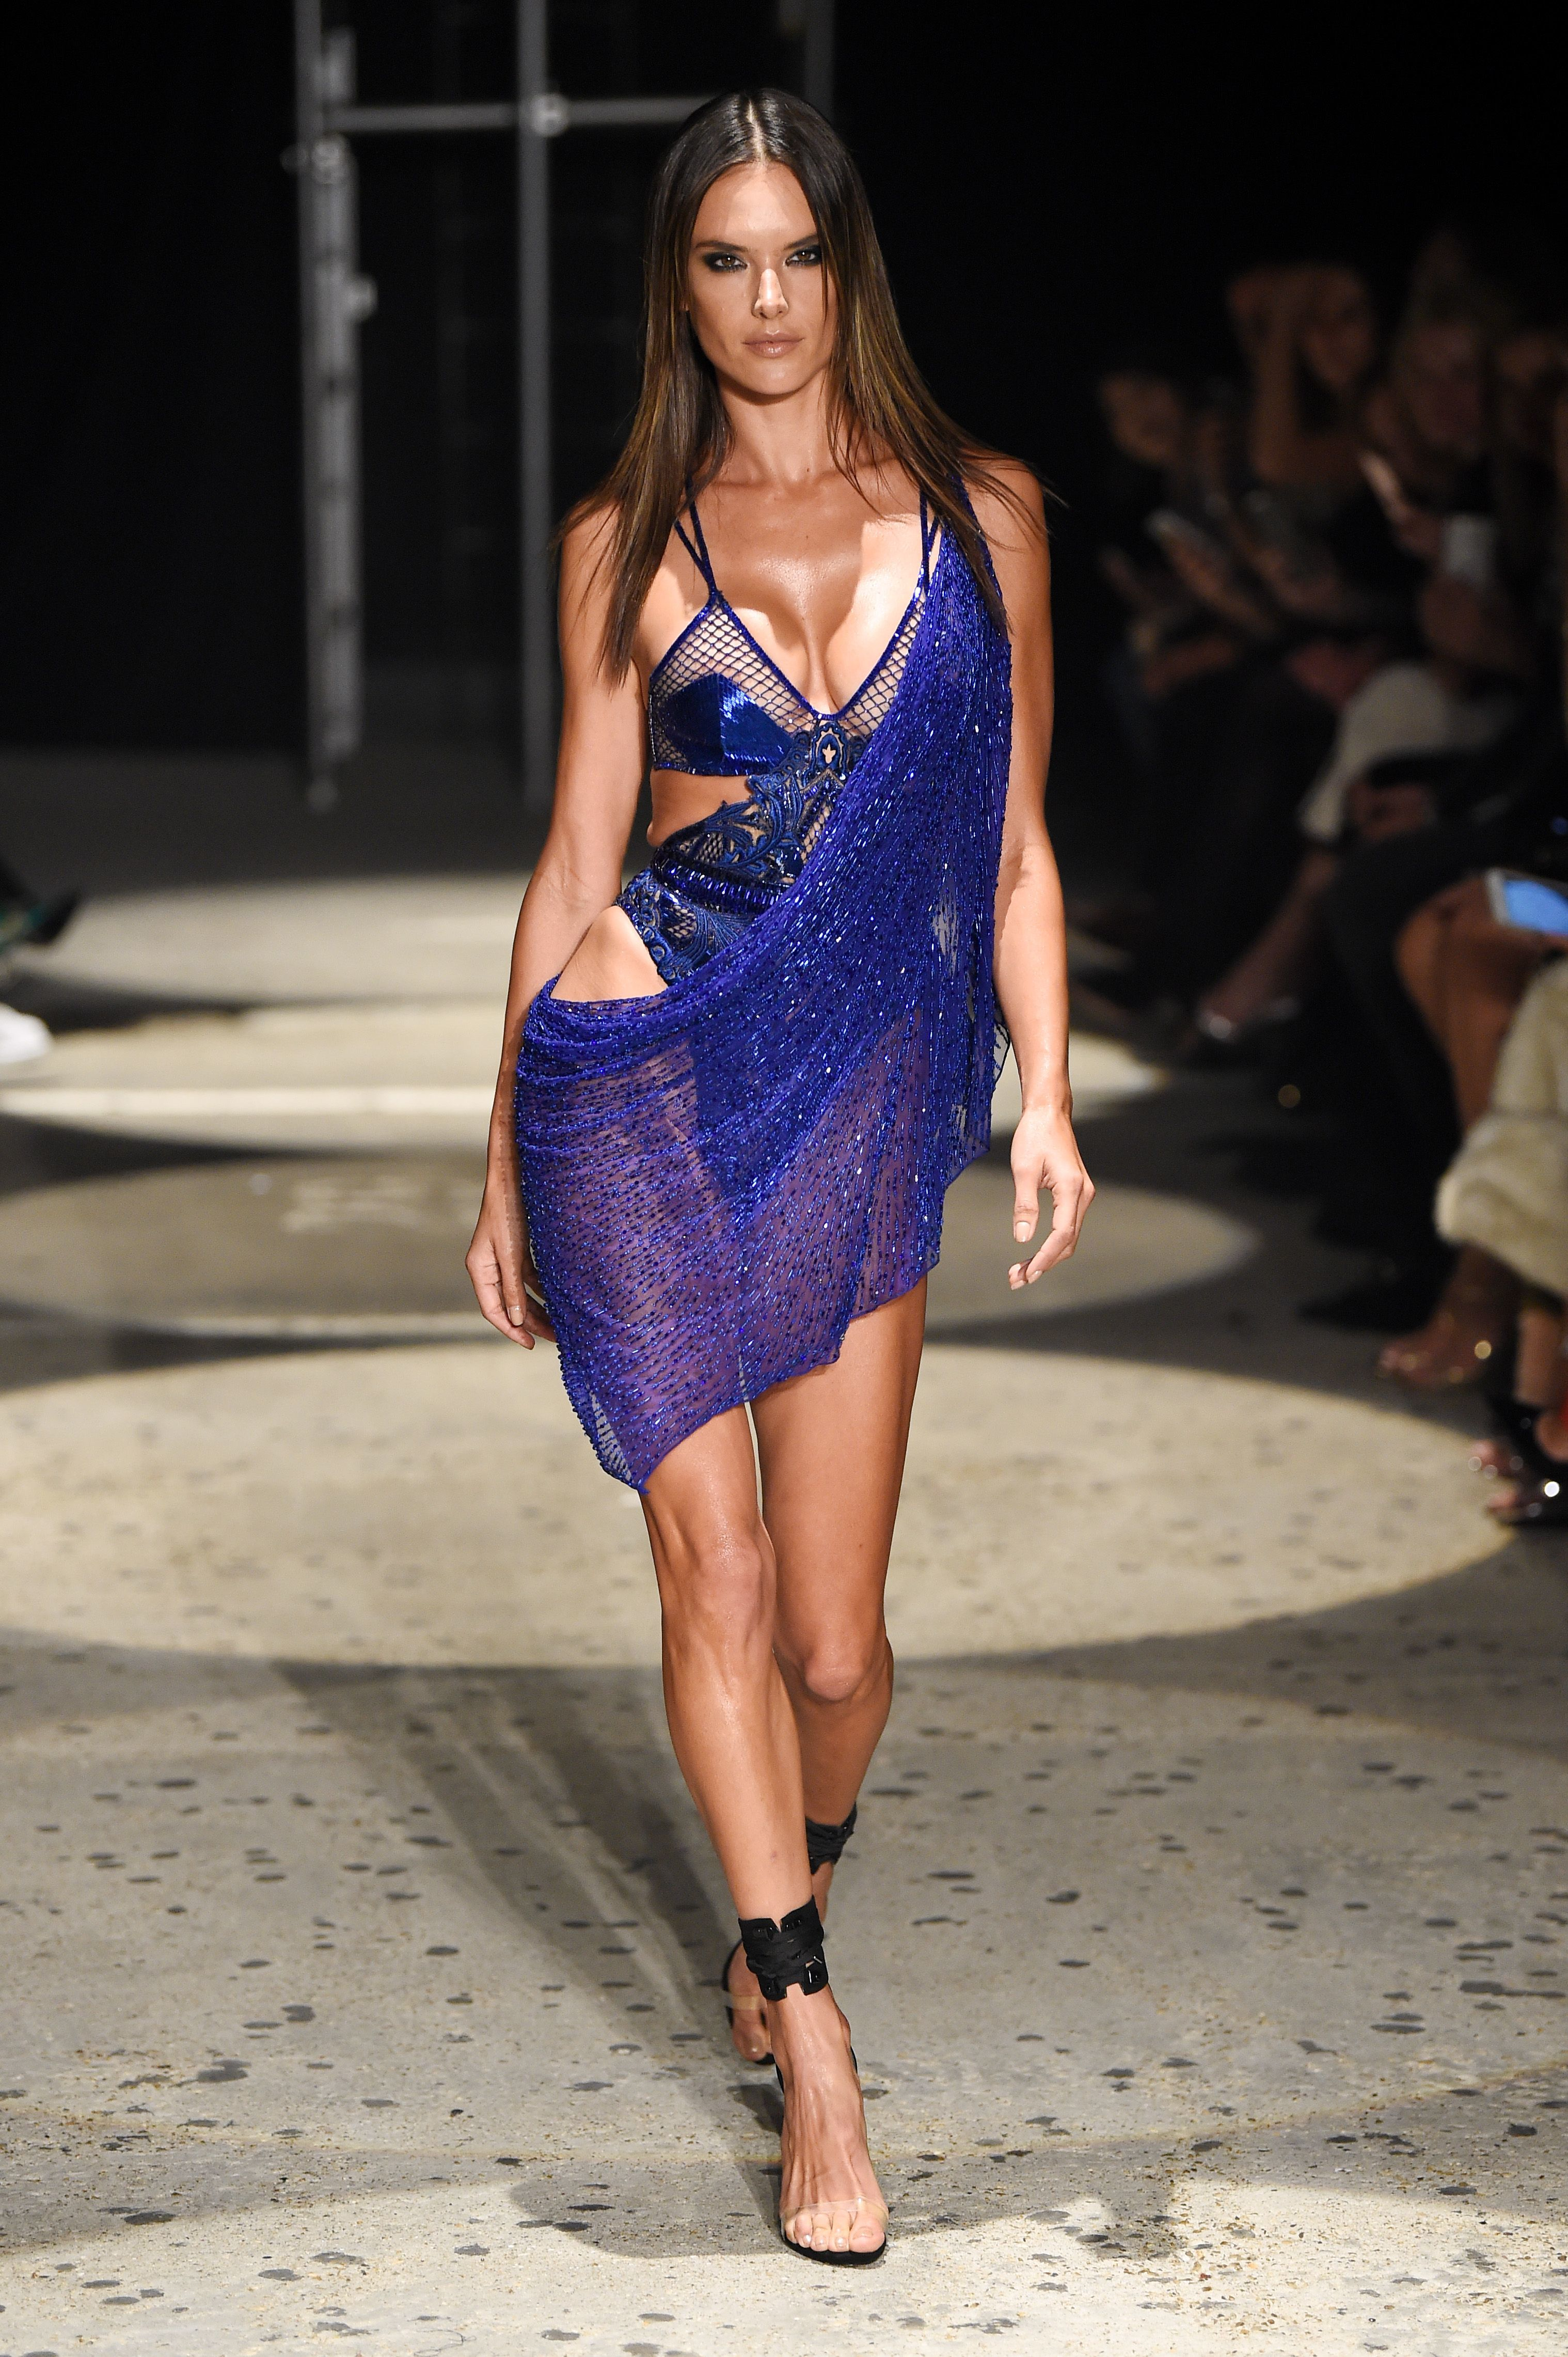 Alessandra Ambrosio appears on the catwalk of the Julien Macdonald show for Spring/Summer 2018 at London Fashion Week on Sept. 18, 2017.